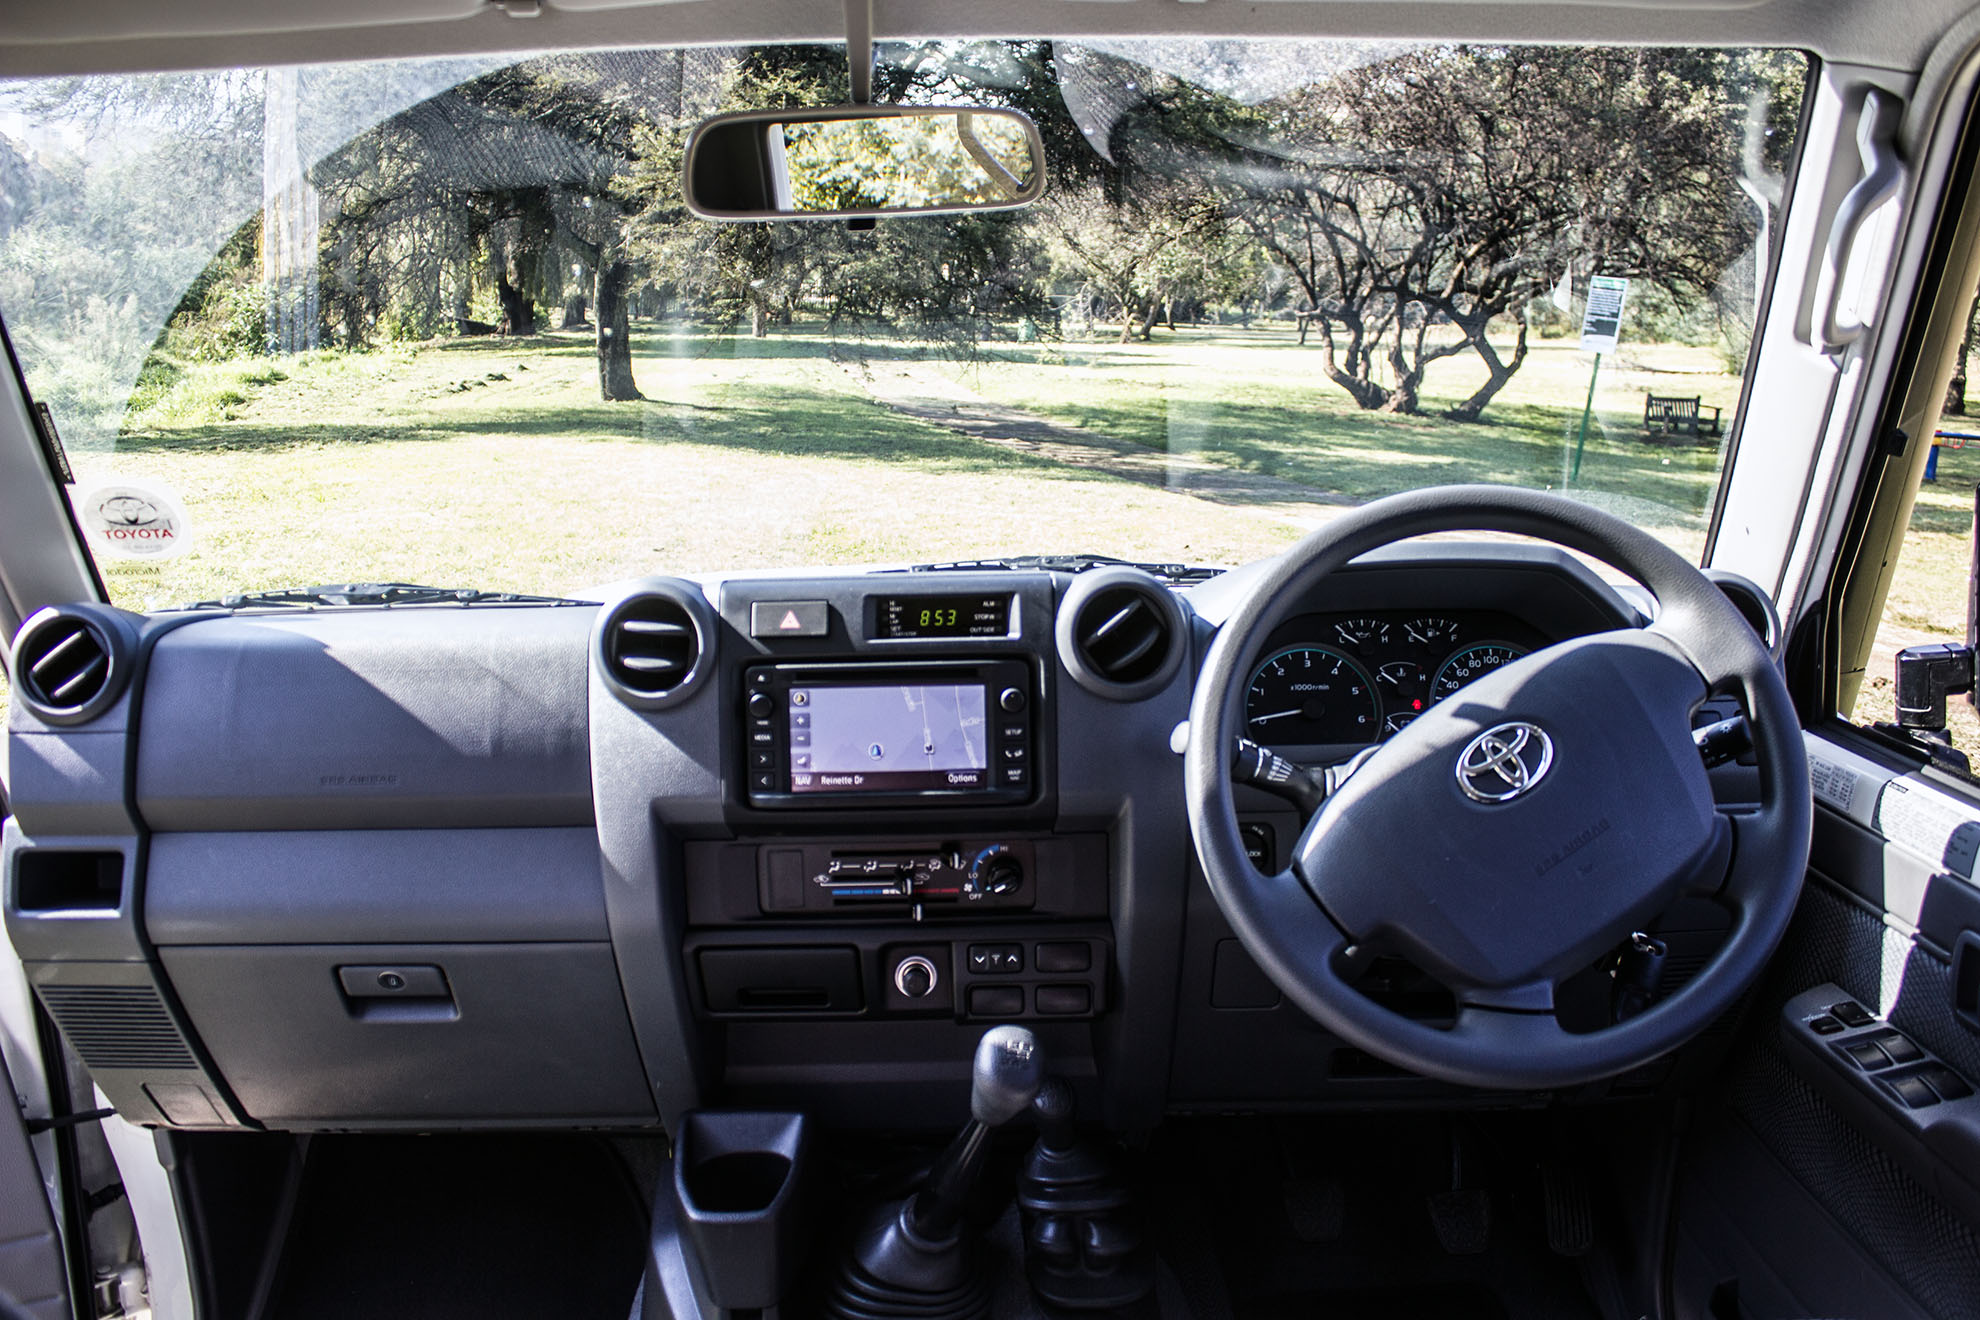 Toyota-Land-Cruiser-Interior